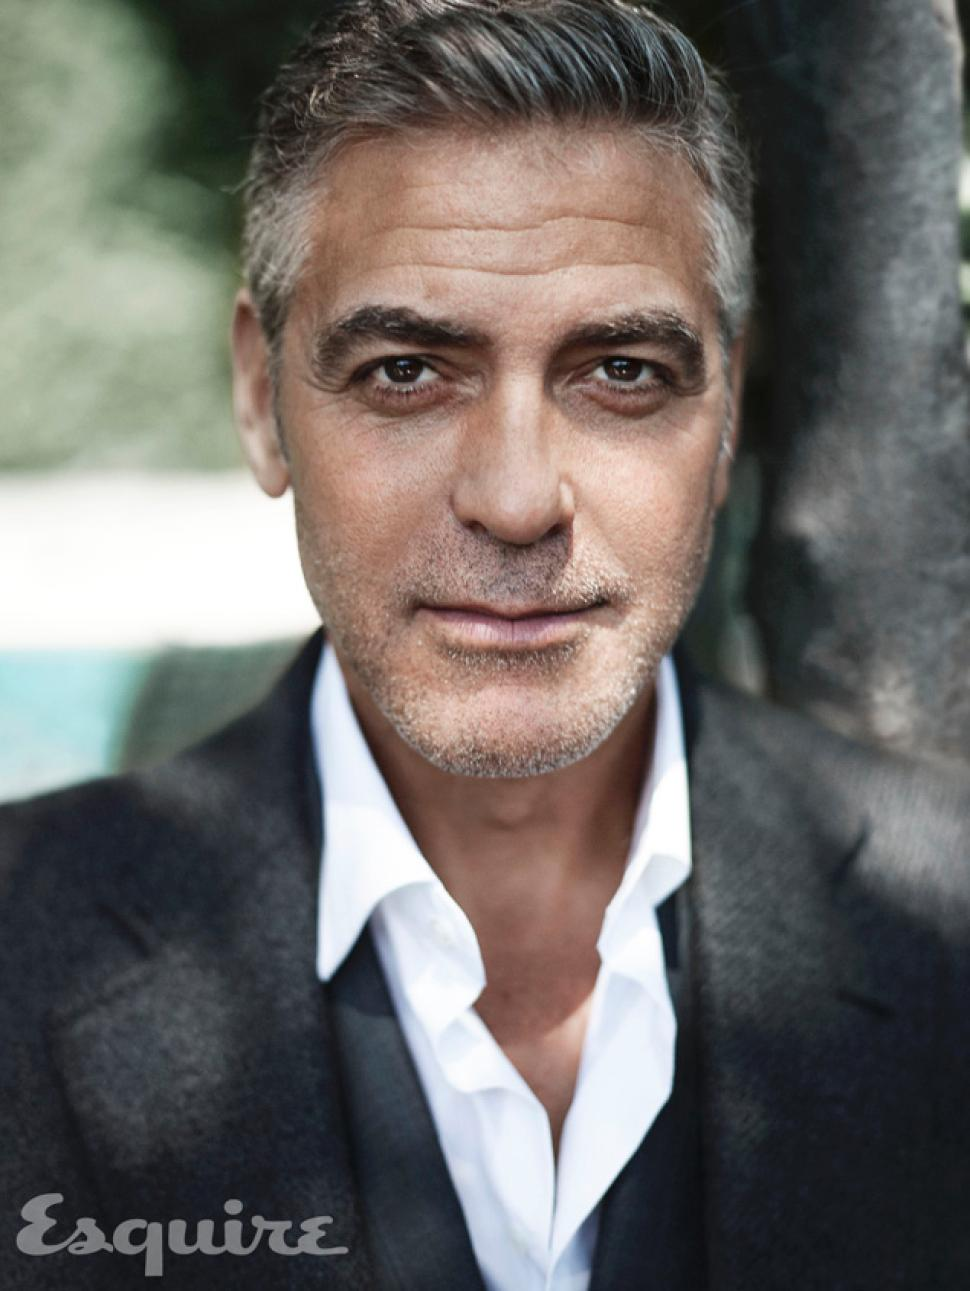 Pictures of George Clooney   Pictures Of Celebrities 970x1291